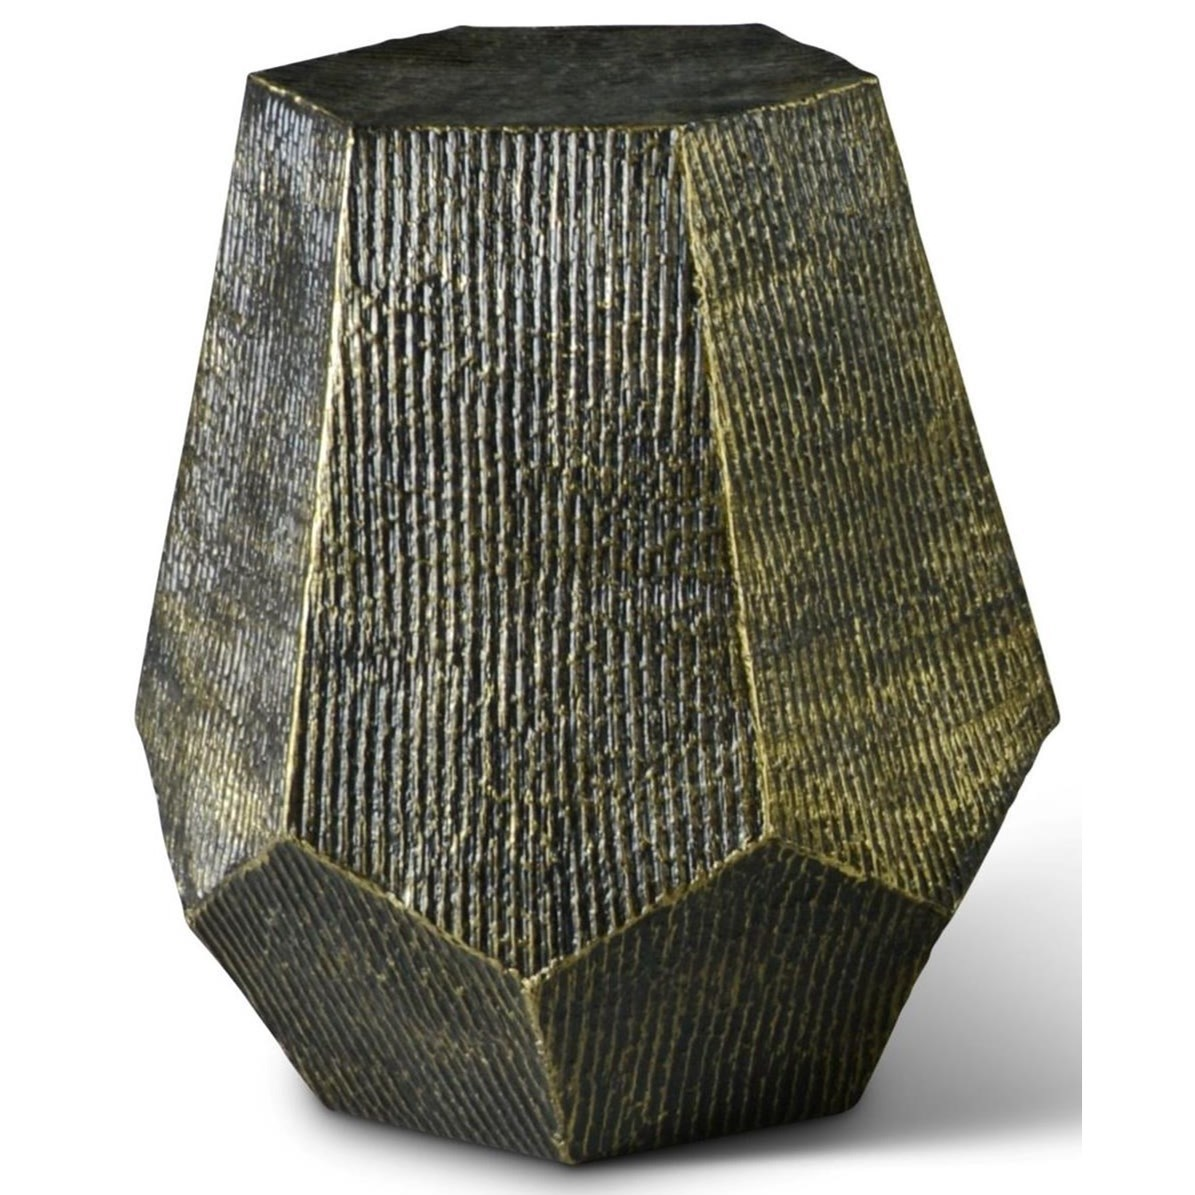 Donato Hexagon End Table by Steve Silver at Northeast Factory Direct